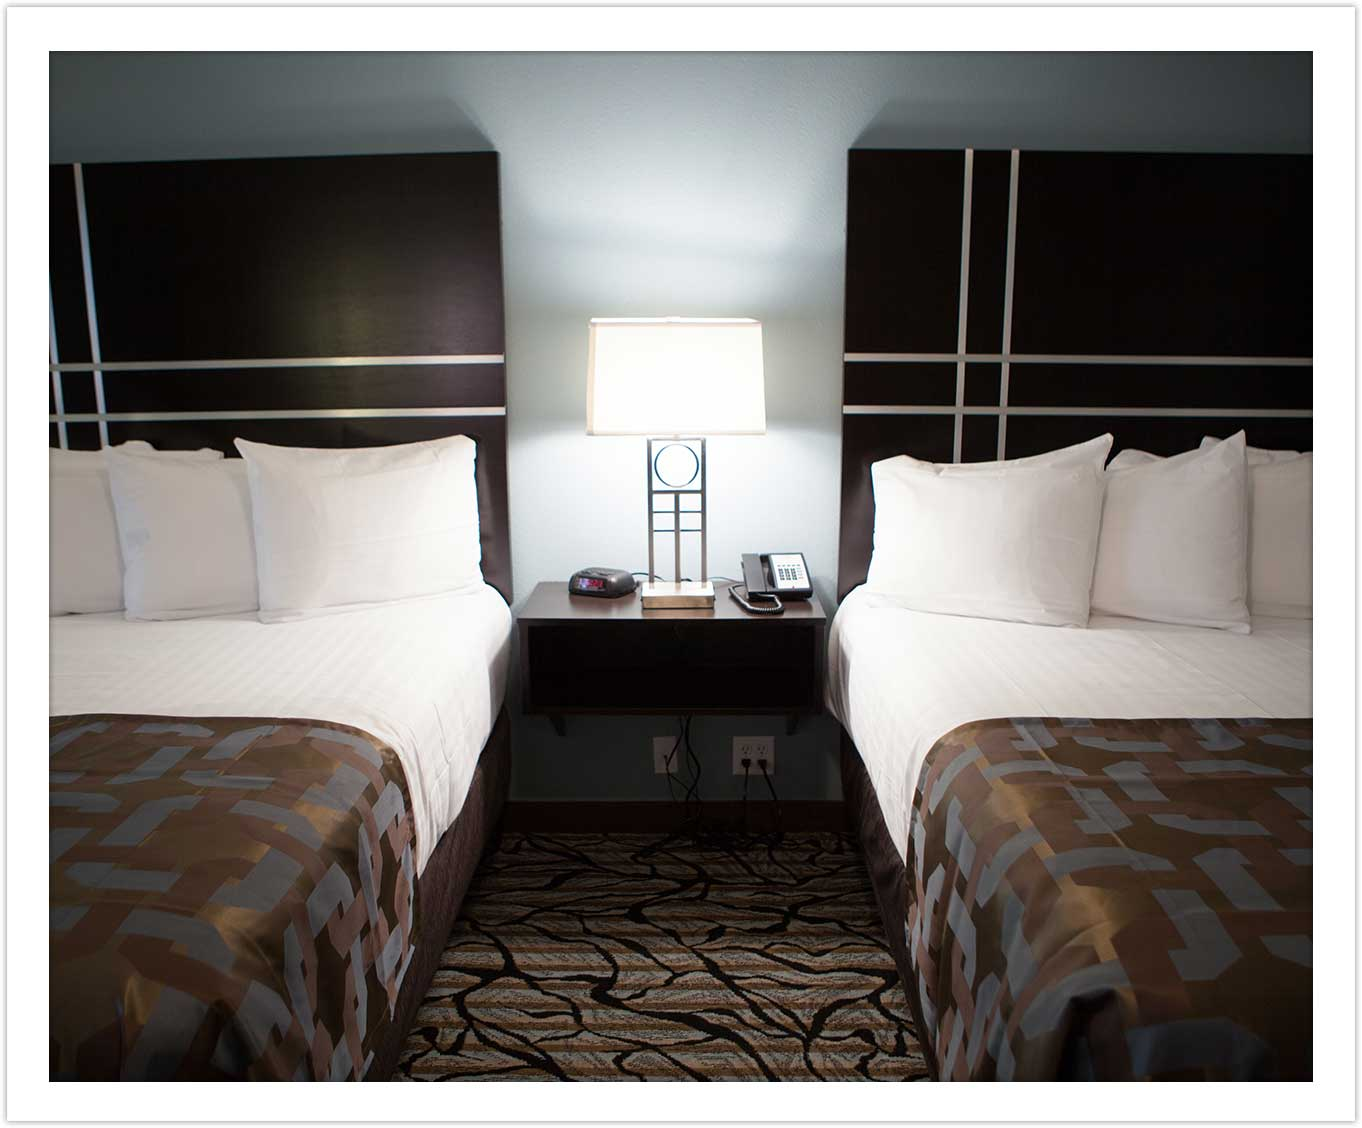 Double Queen Room at the Arbor Hotel and Conference Center Lubbock Texas